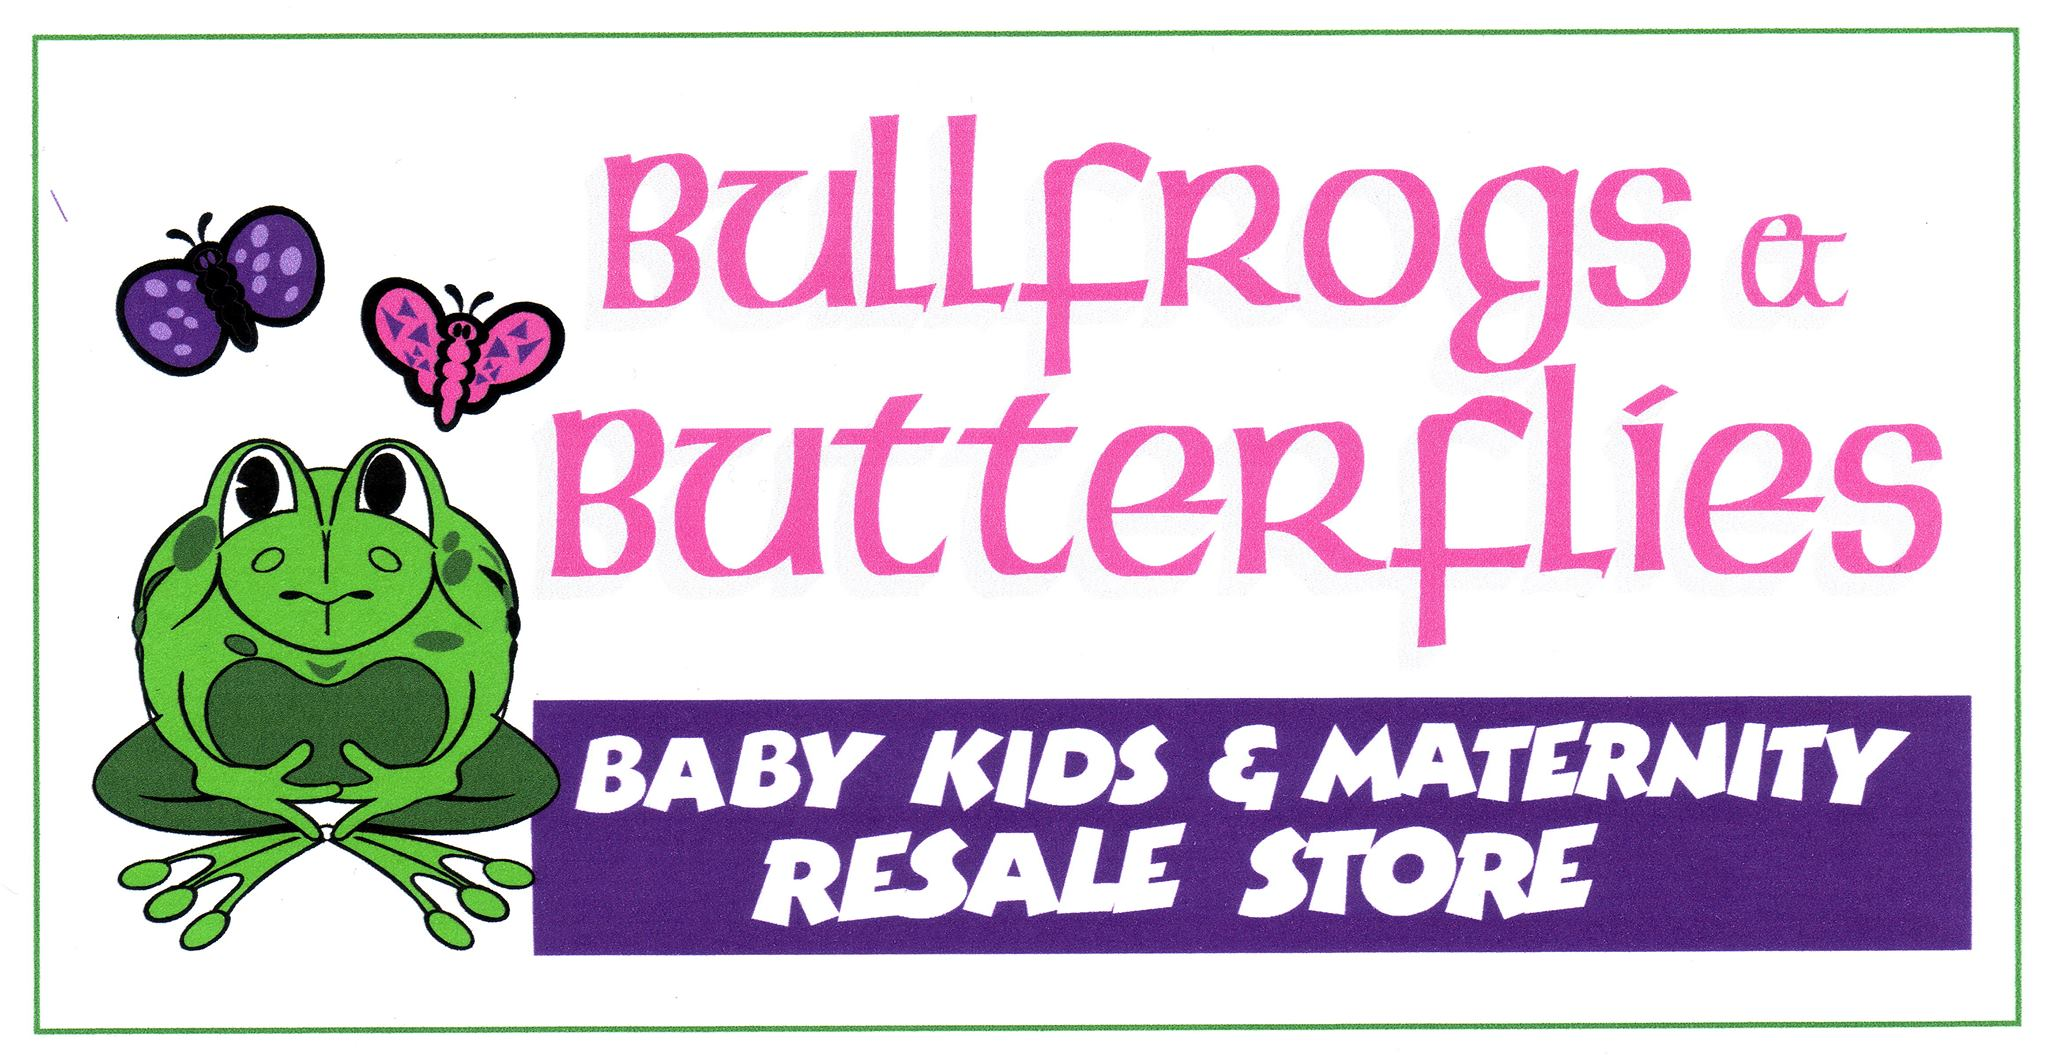 bullfrogs & butterflies.jpg